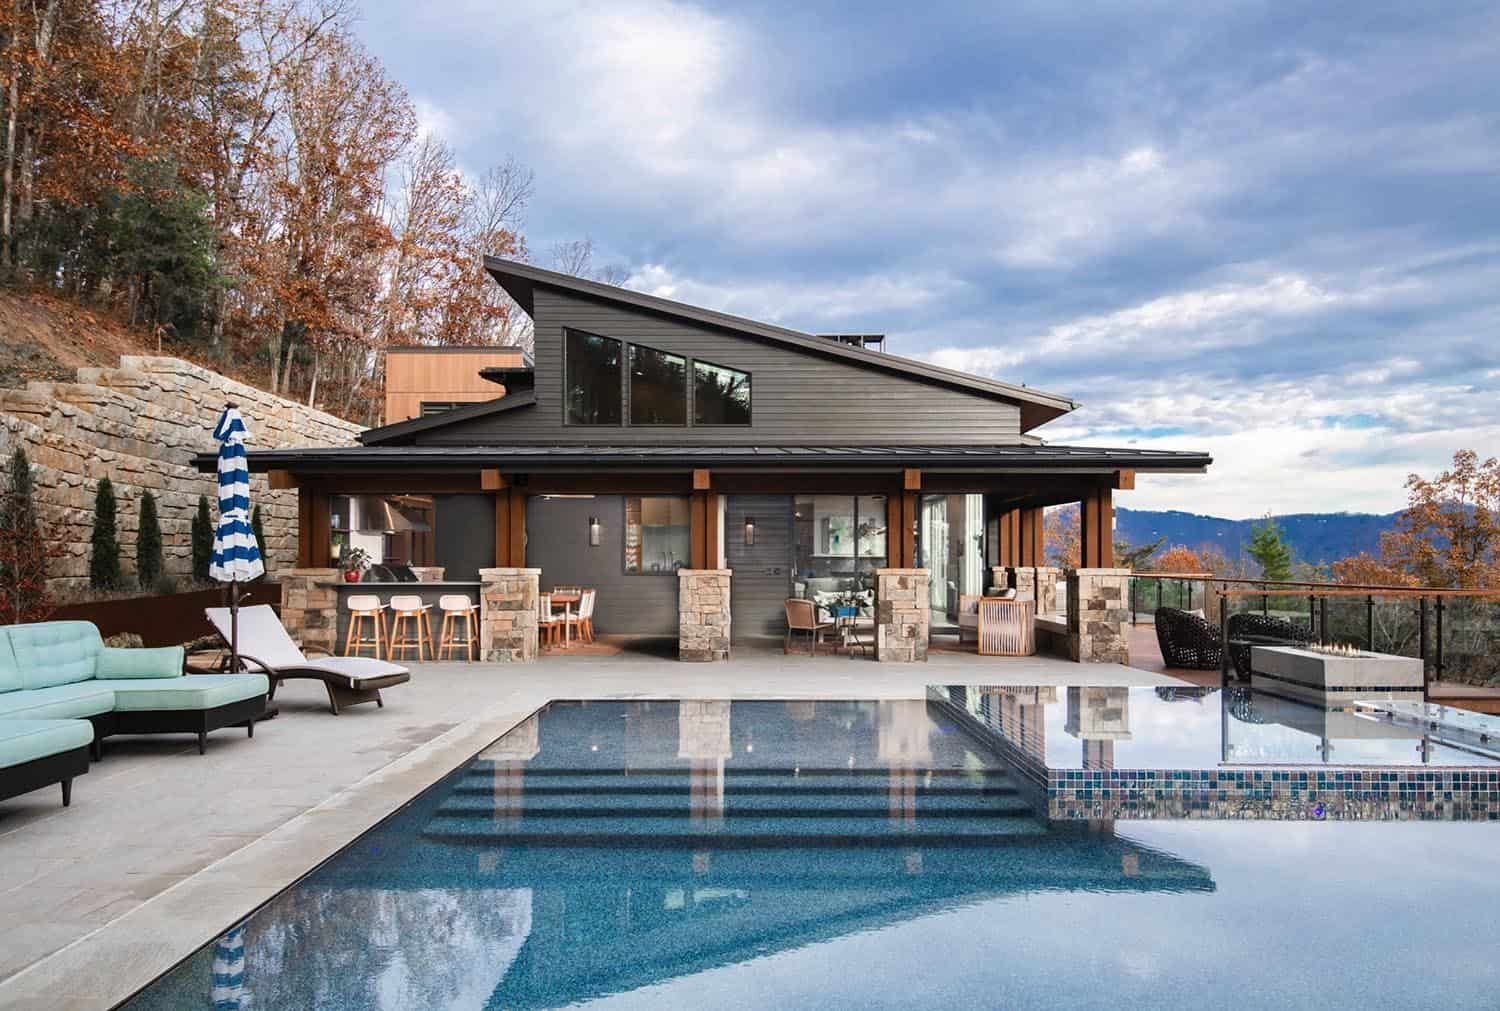 Beautifully Inspiring Mountain Home Nestled In The Blue Ridge Mountains In 2020 Swimming Pool Designs Mountain Home Pool